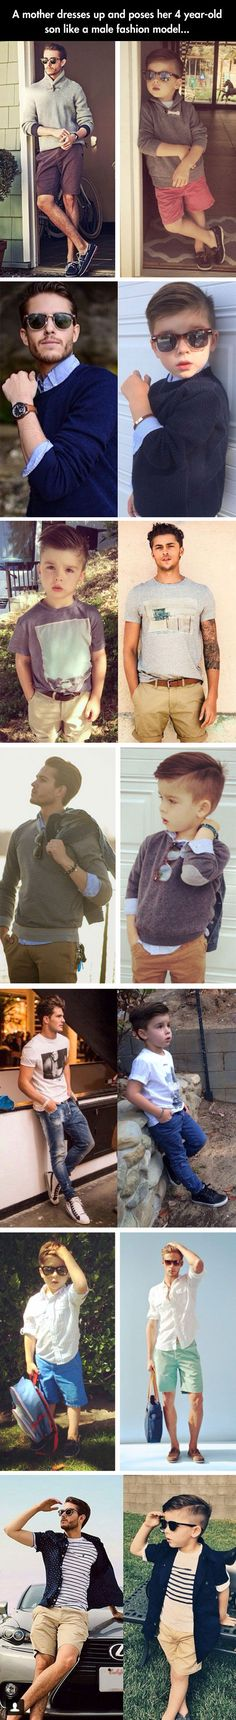 A Mother Dresses Up And Poses Her 4 Year Old Son Like A Male Fashion Model Pictures, Photos, and Images for Facebook, Tumblr, Pinterest, and Twitter